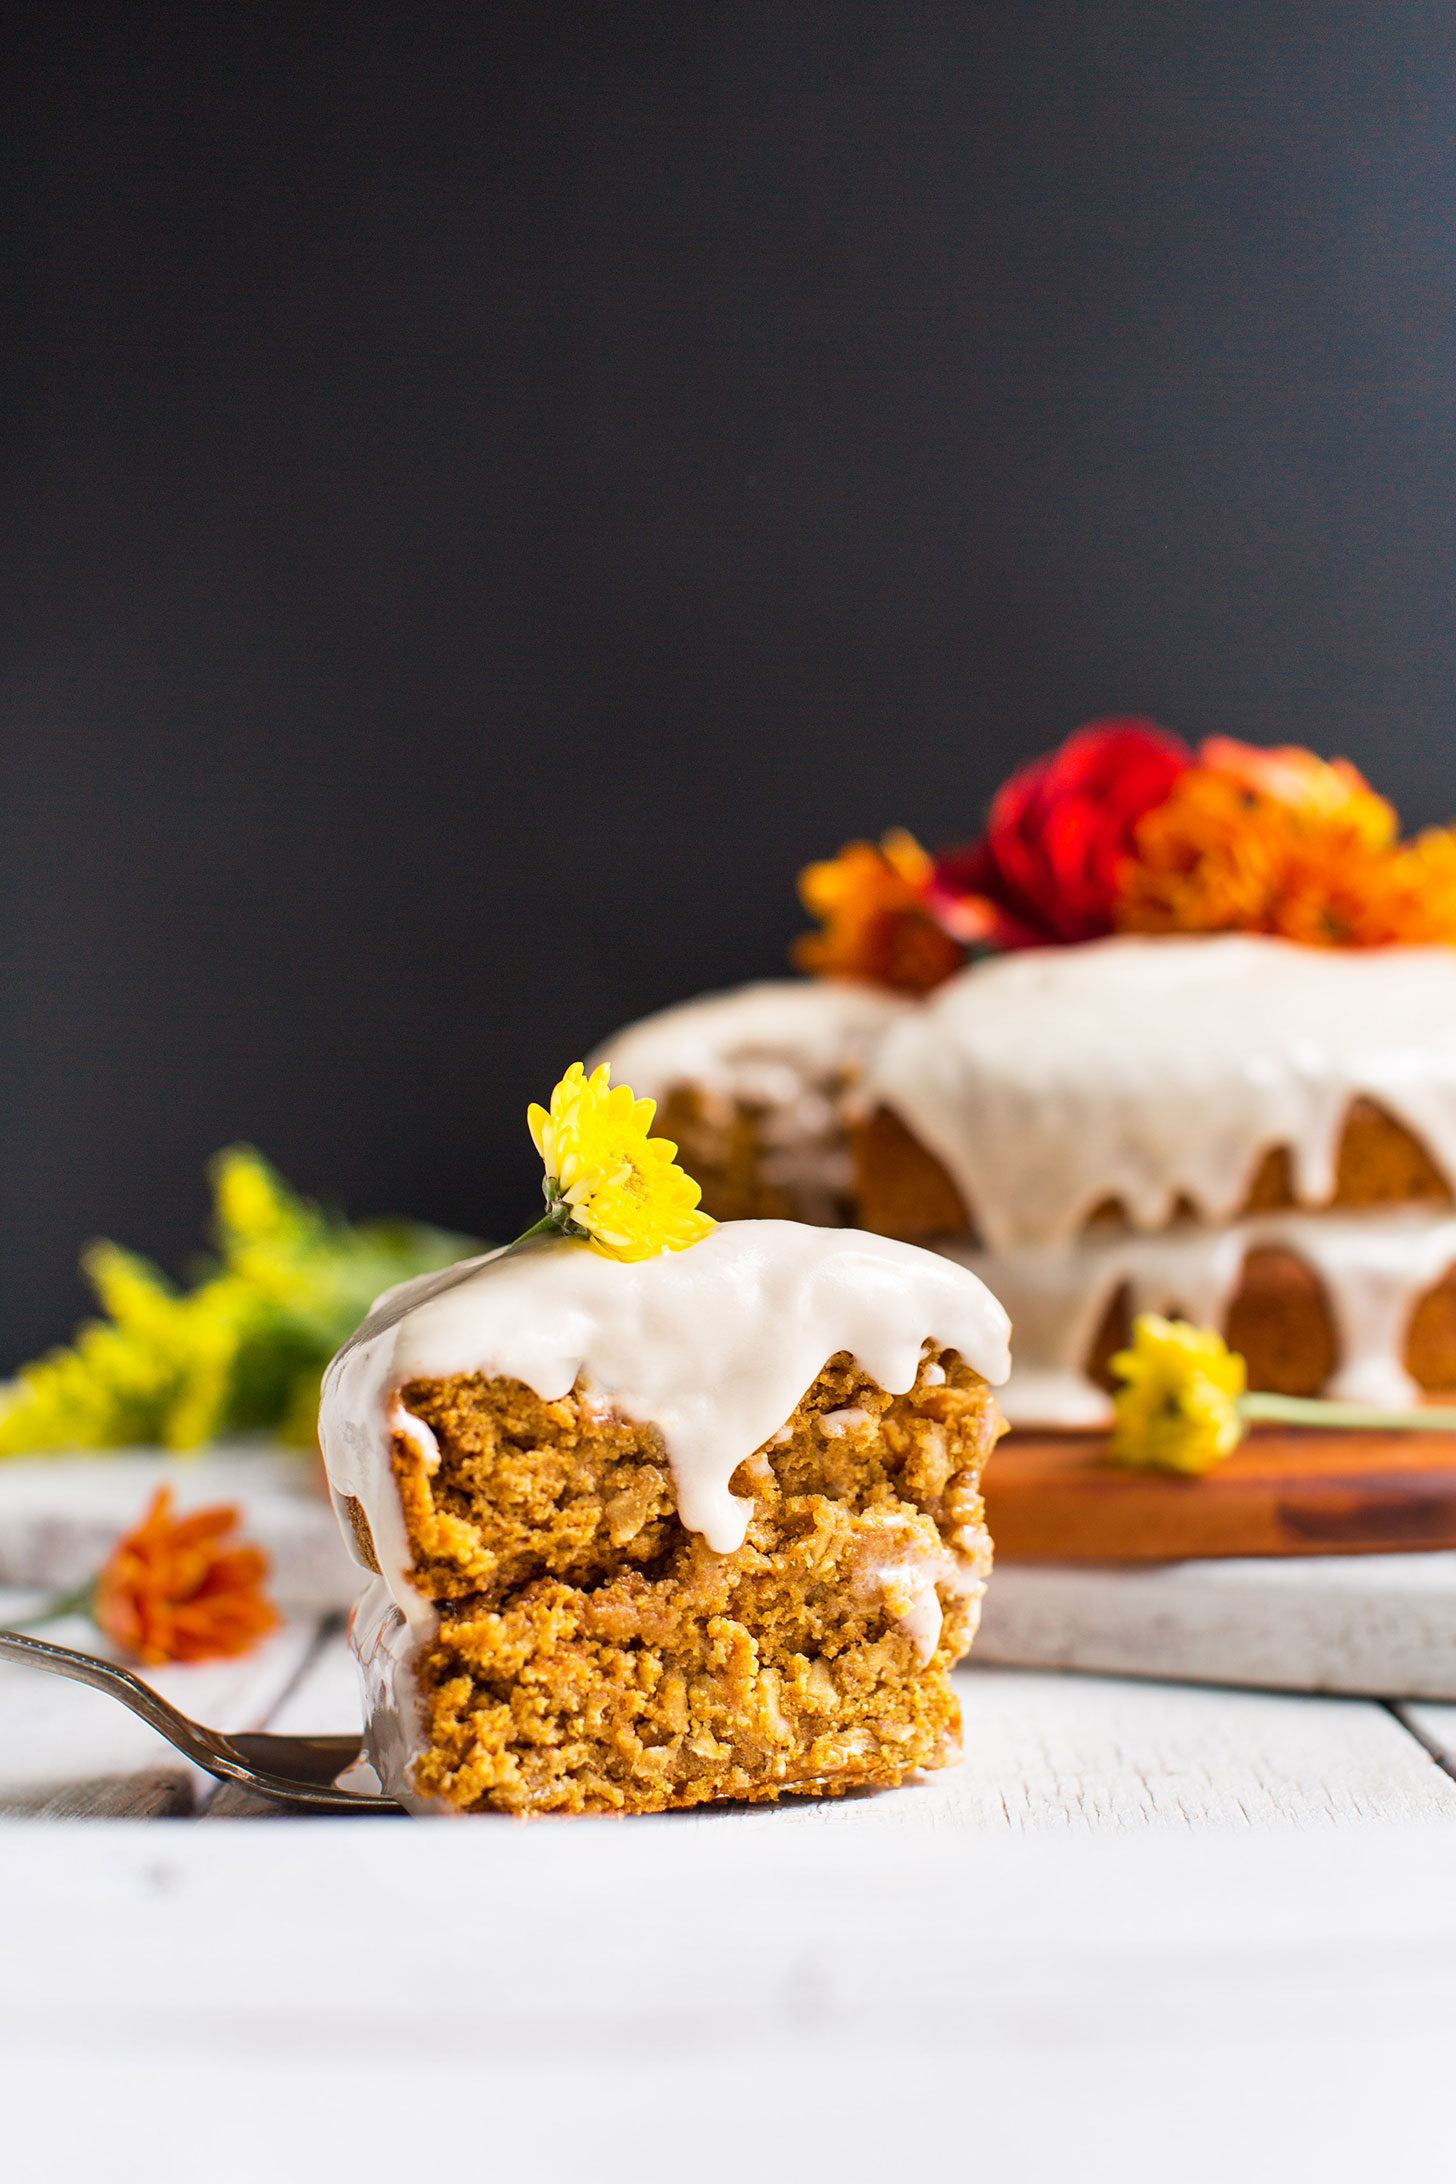 A slice of tender and flavorful Pumpkin Cake for a fall dessert recipe